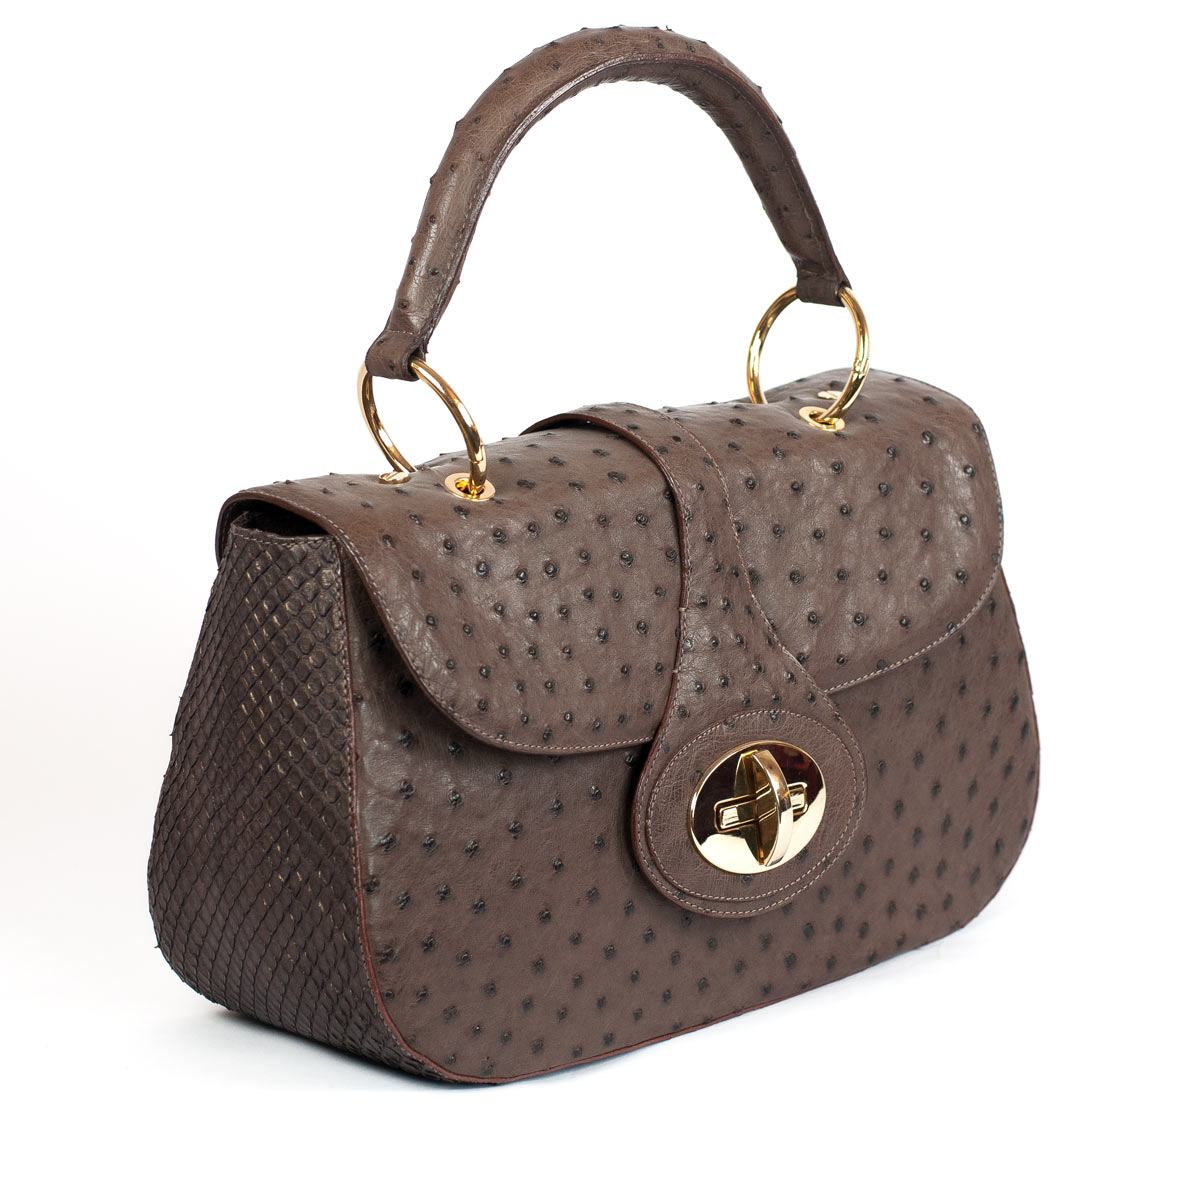 LUXURIOUS OSTRICH AND ANACONDA BAG